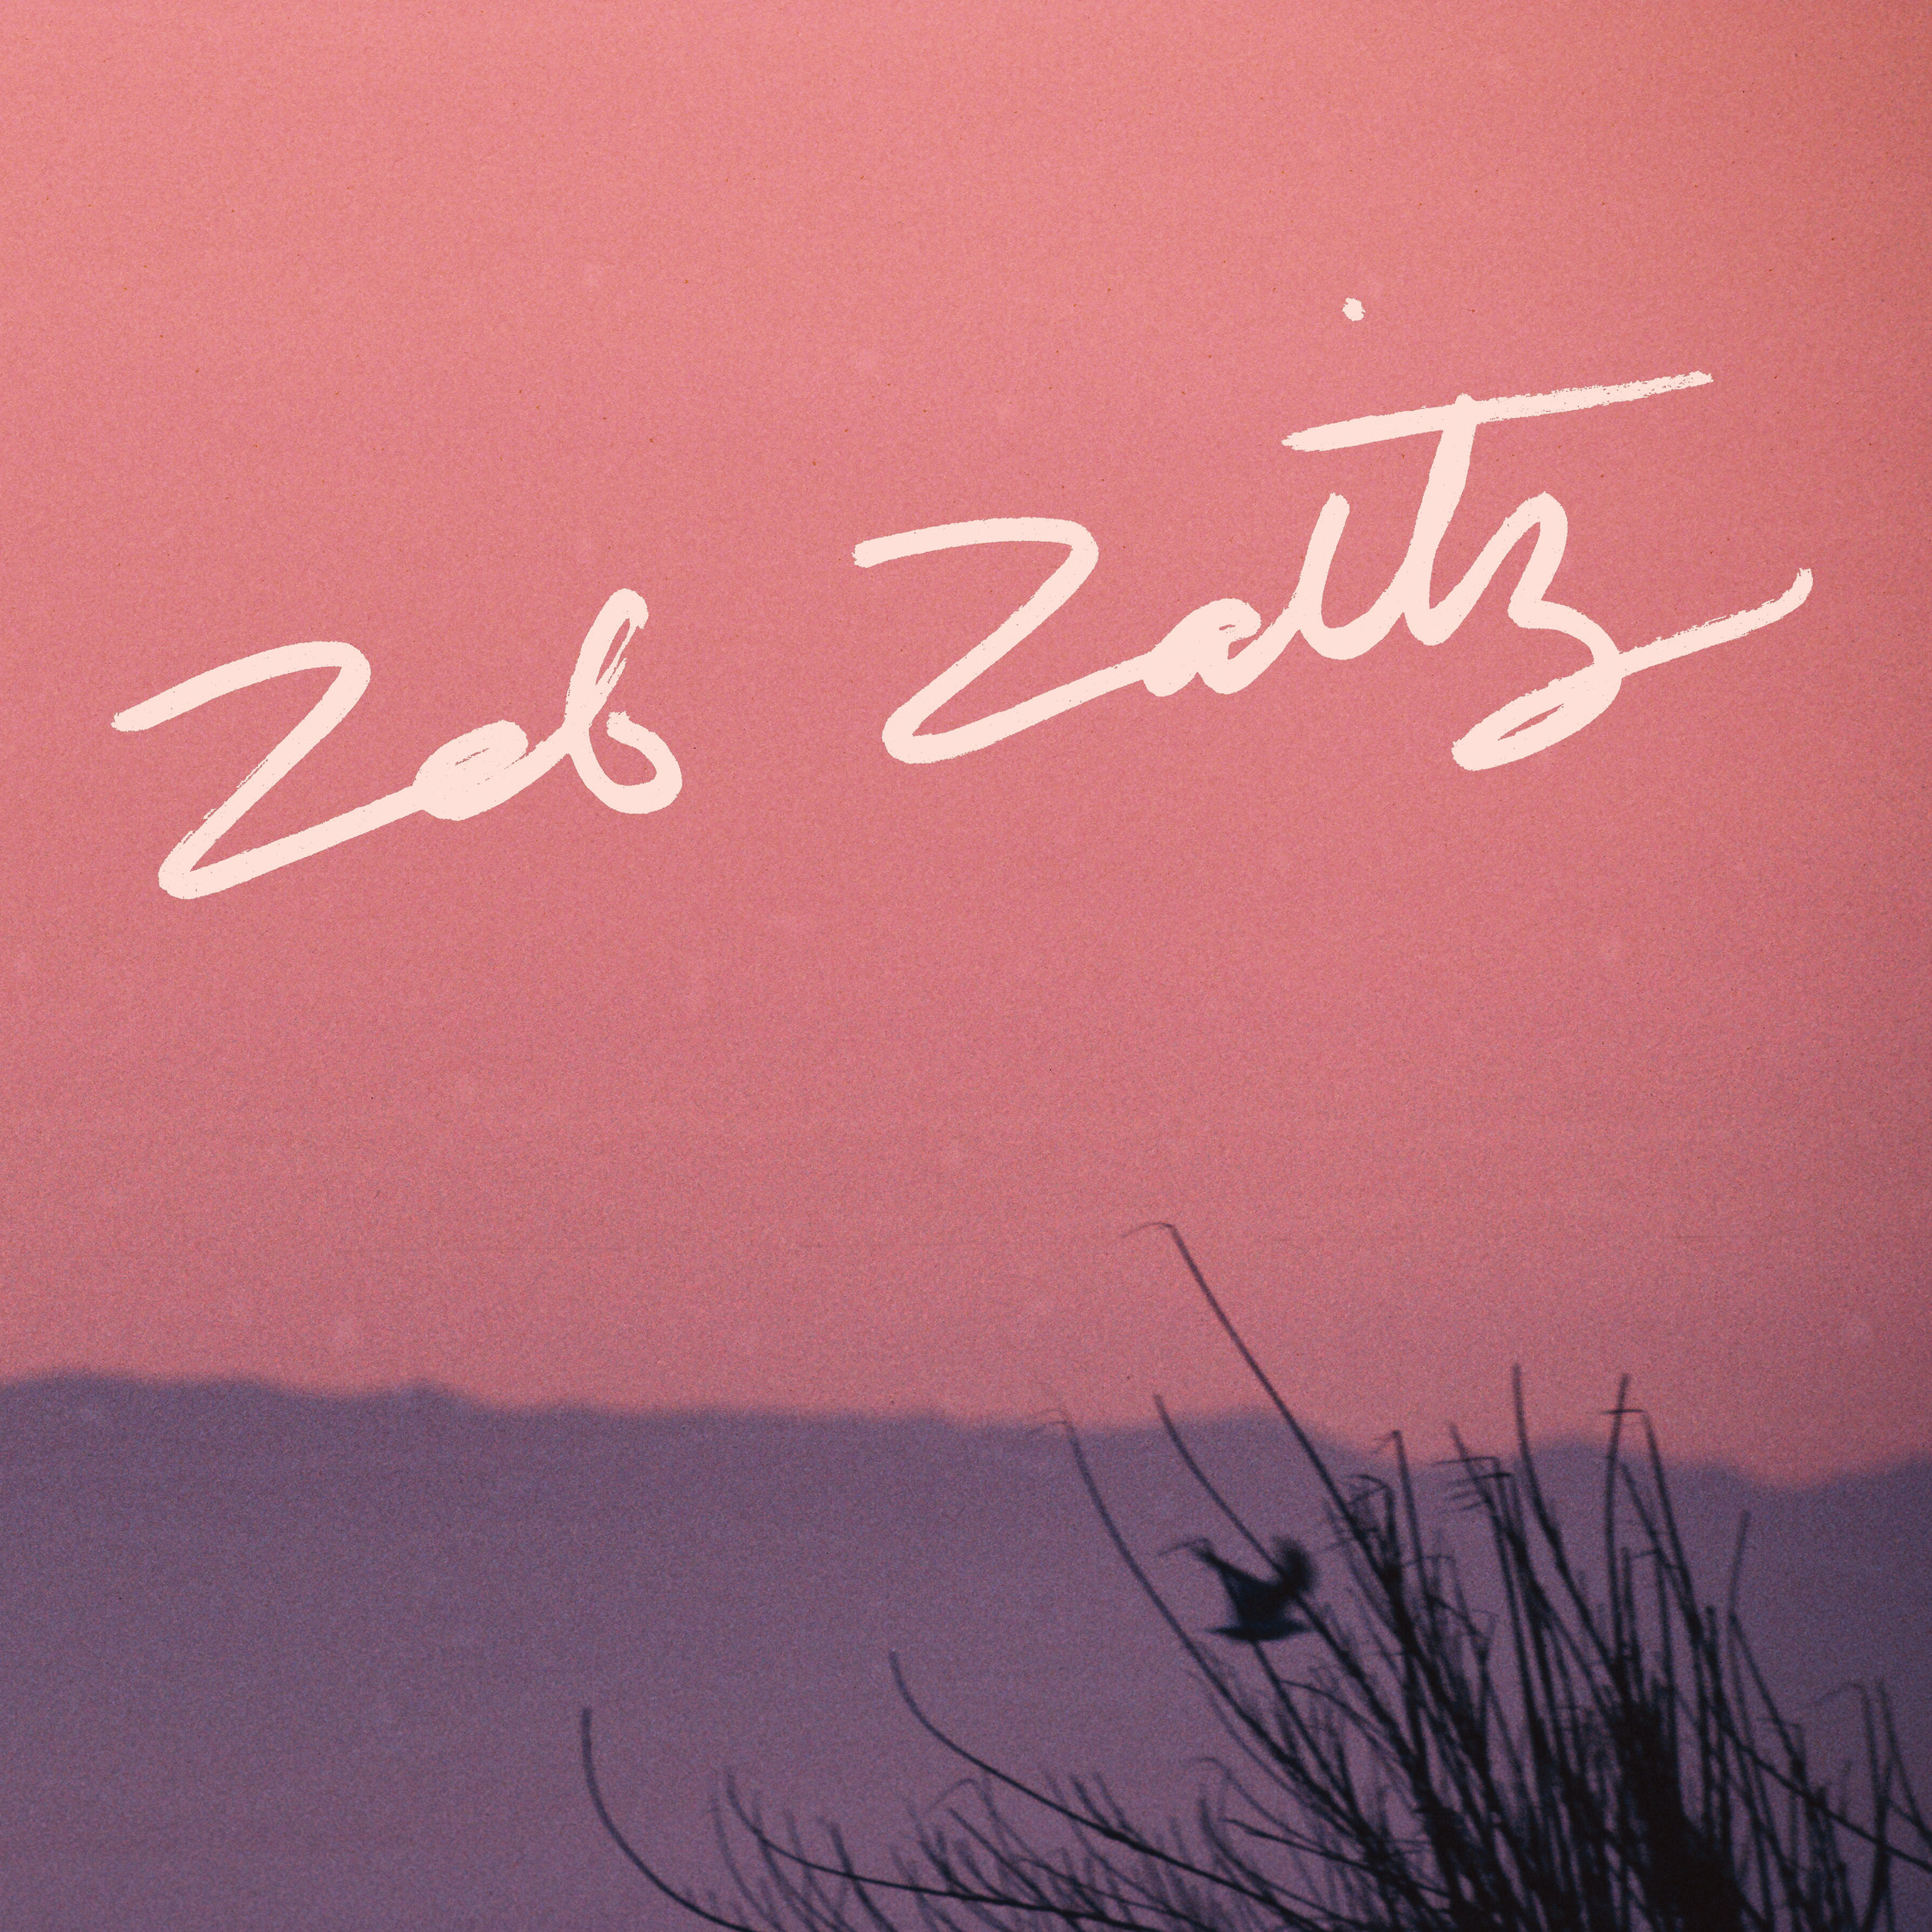 Hand-Lettered Album Title for Zeb Zaitz (Royal Oakie)